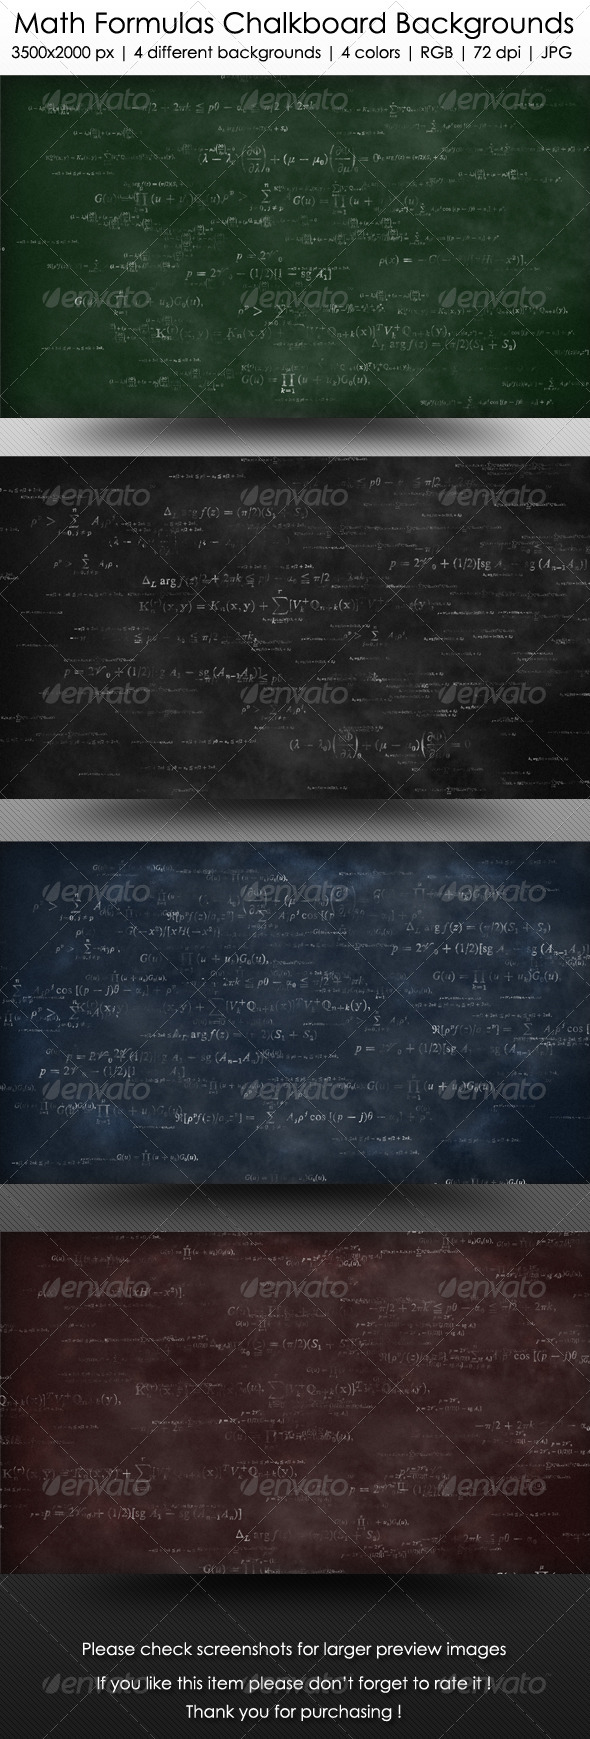 Math Formulas Chalkboard Backgrounds   Education Backgrounds 590x1739